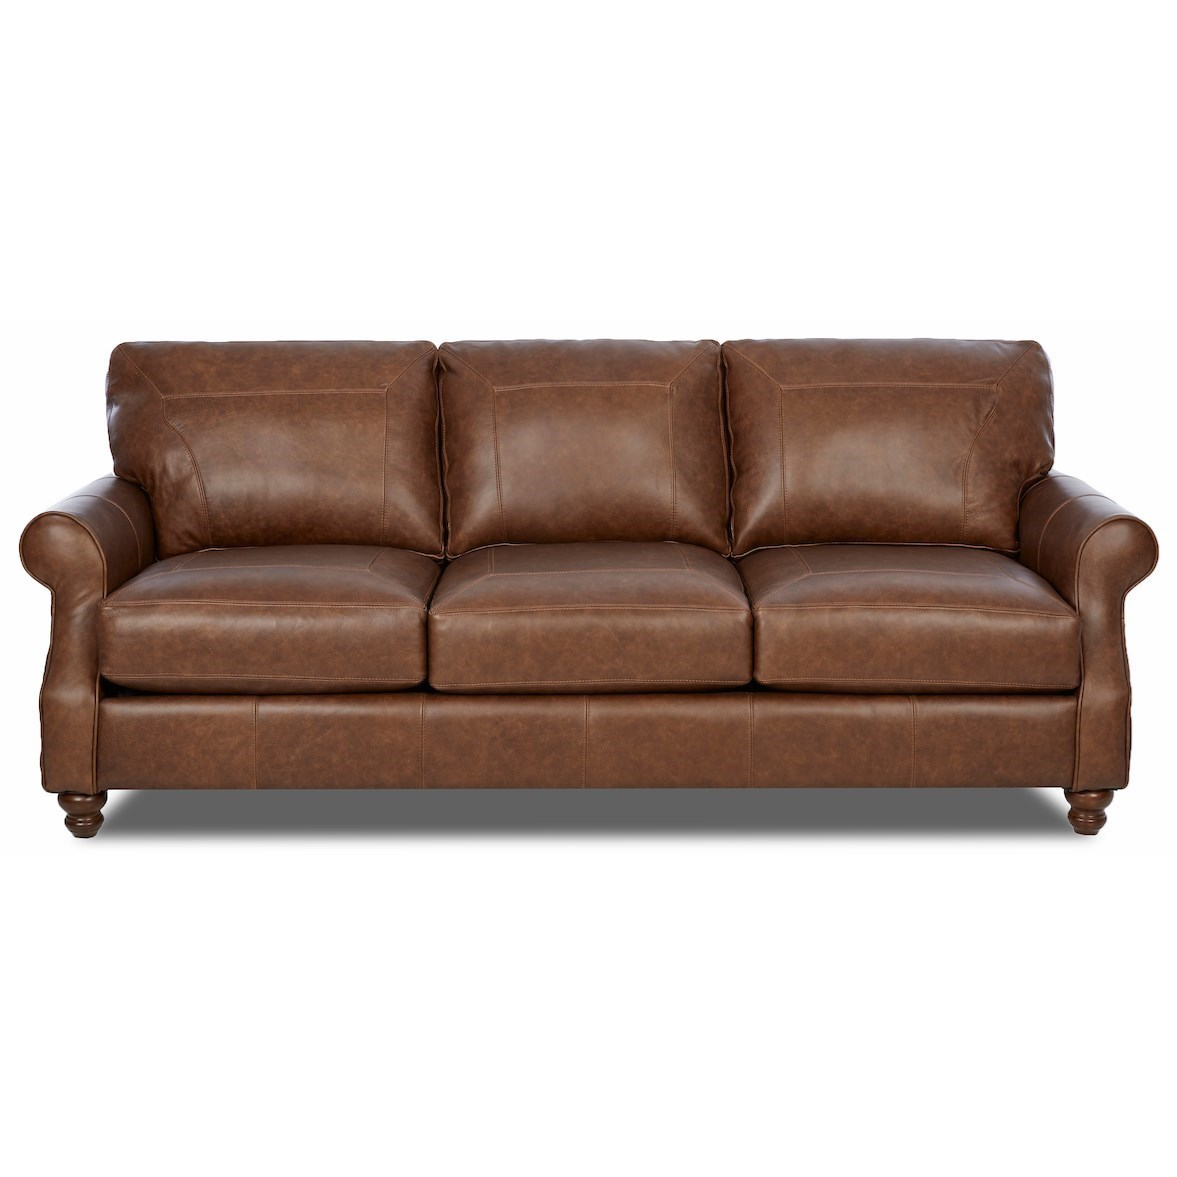 Traditional Extra Large Leather Sofa with Rolled Arms